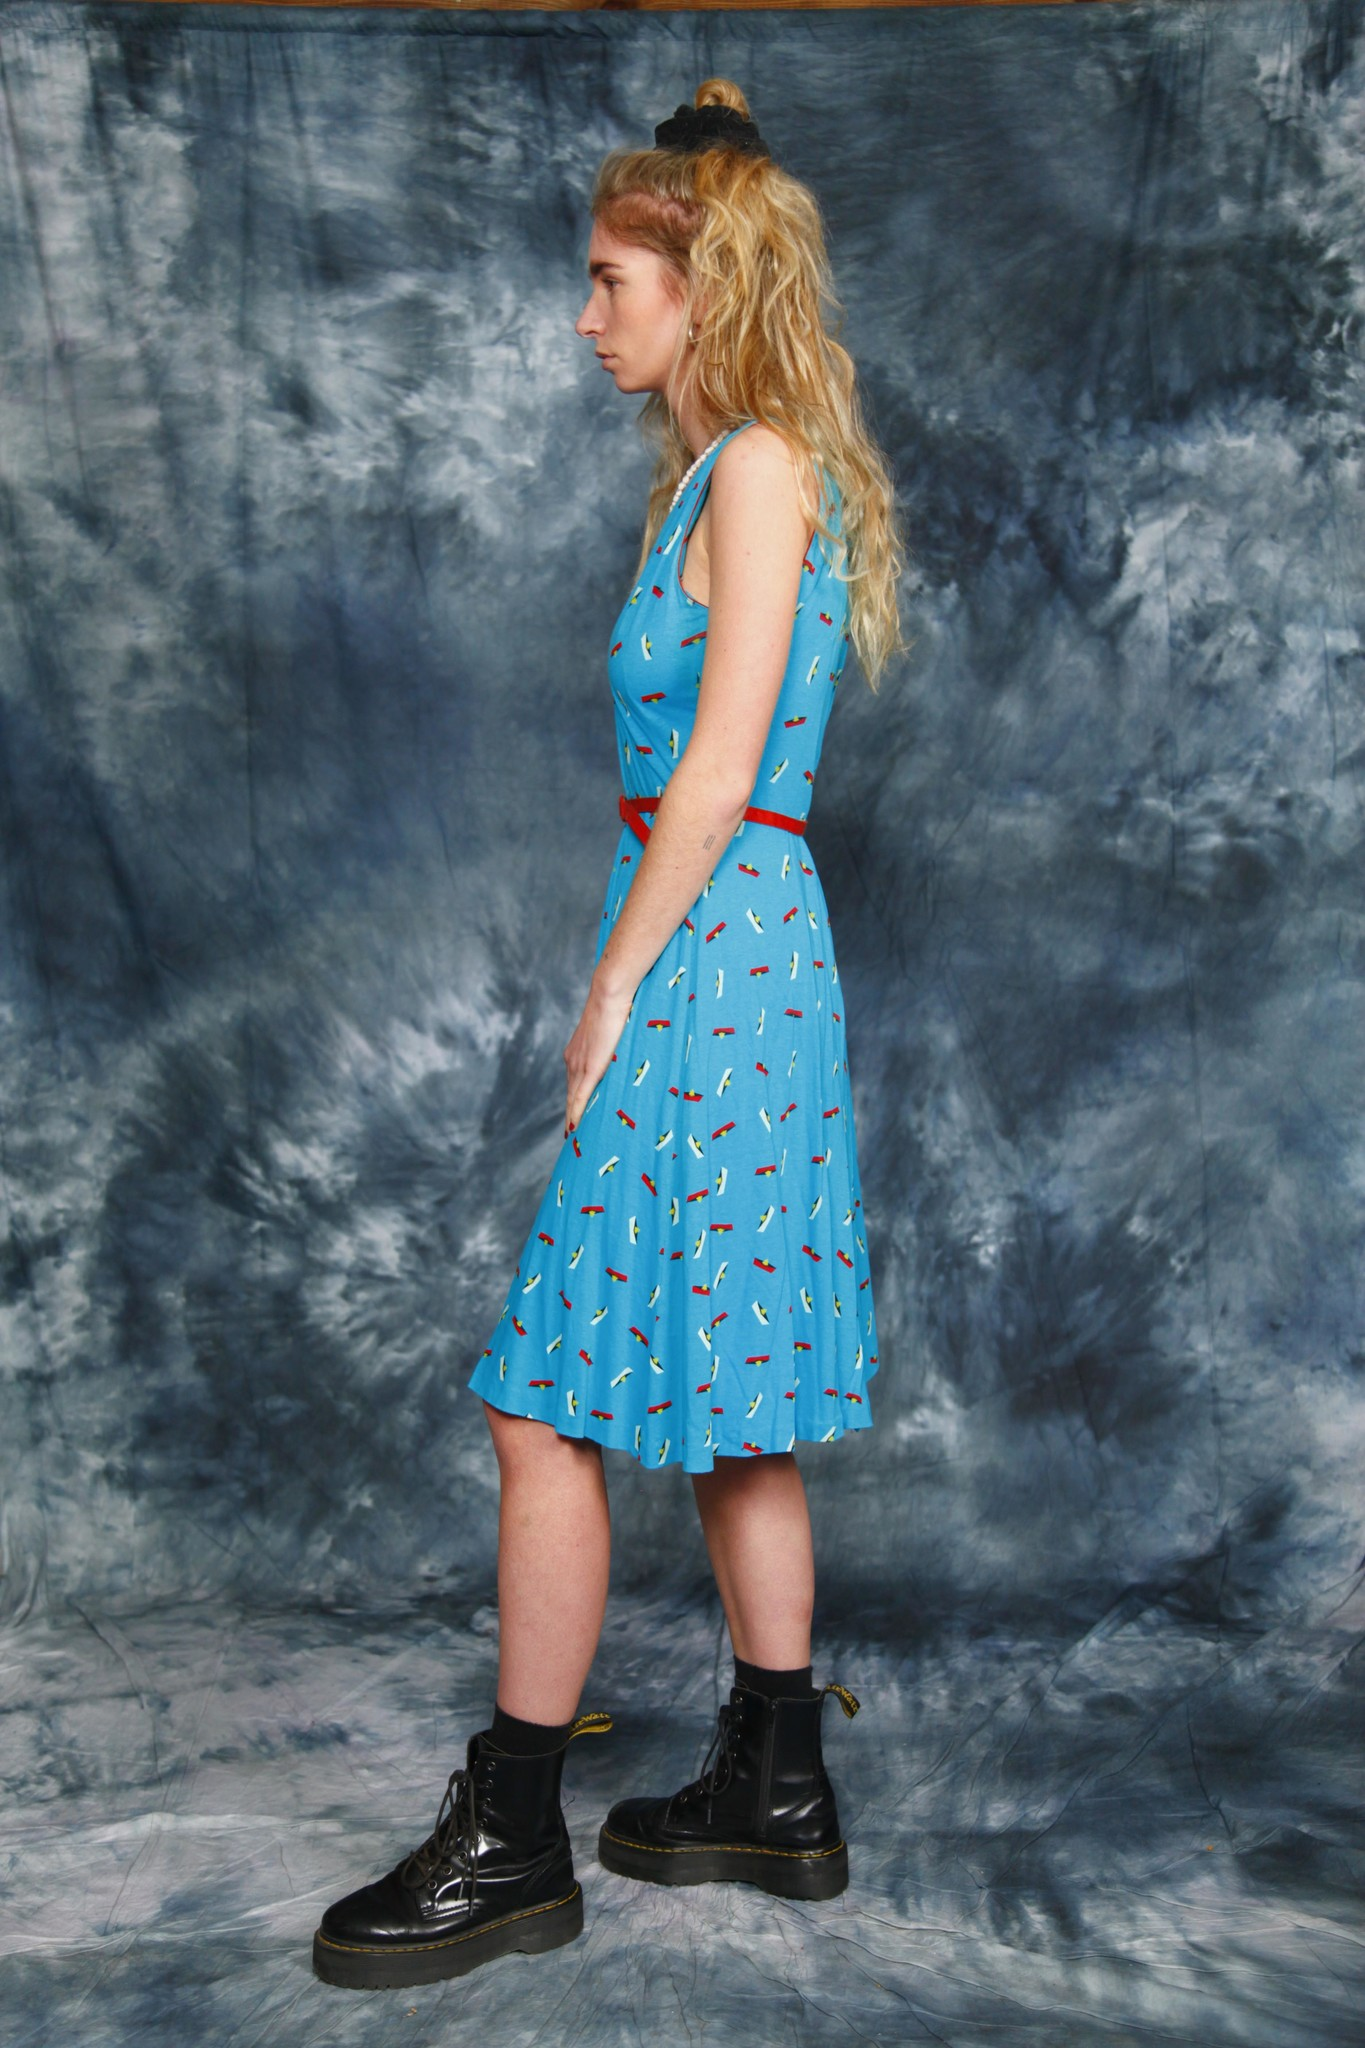 Quirky 70s dress in blue